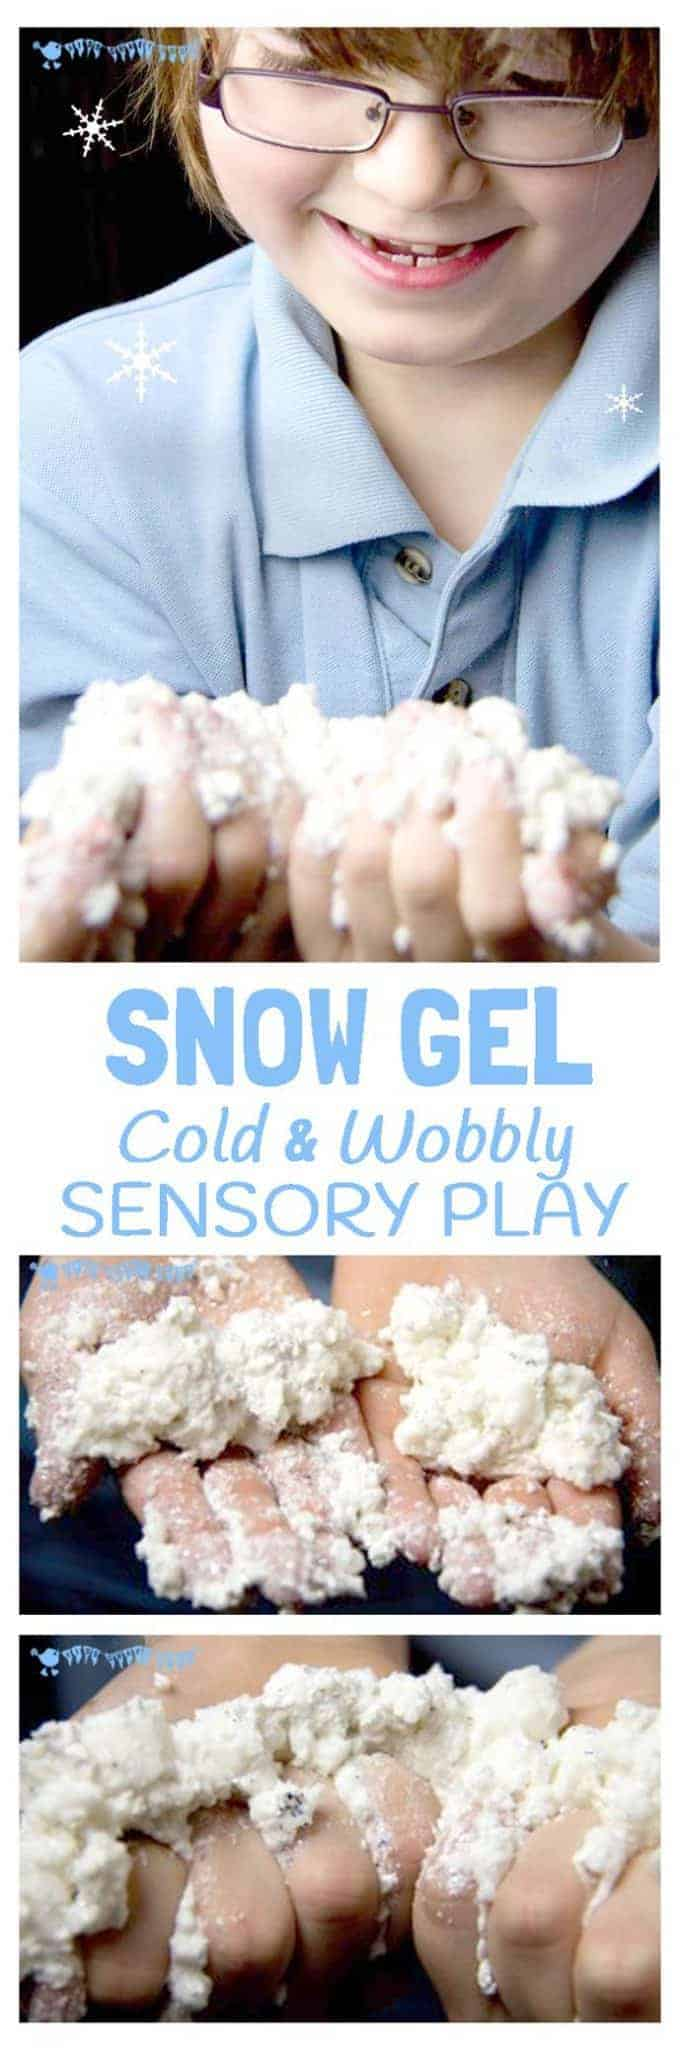 WINTER SENSORY PLAY SNOW GEL - Cold, wobbly, sparkly Snow Gel; a wonderfully rich Winter sensory play experience for kids. #sensory #sensoryplay #sensoryplayideas #sensoryplayactivities #sensoryseeker #winter #winterplay #winteractivities #kidsactivities #play #playideas #invitationtoplay #kidscraftroom #letsplay #snow